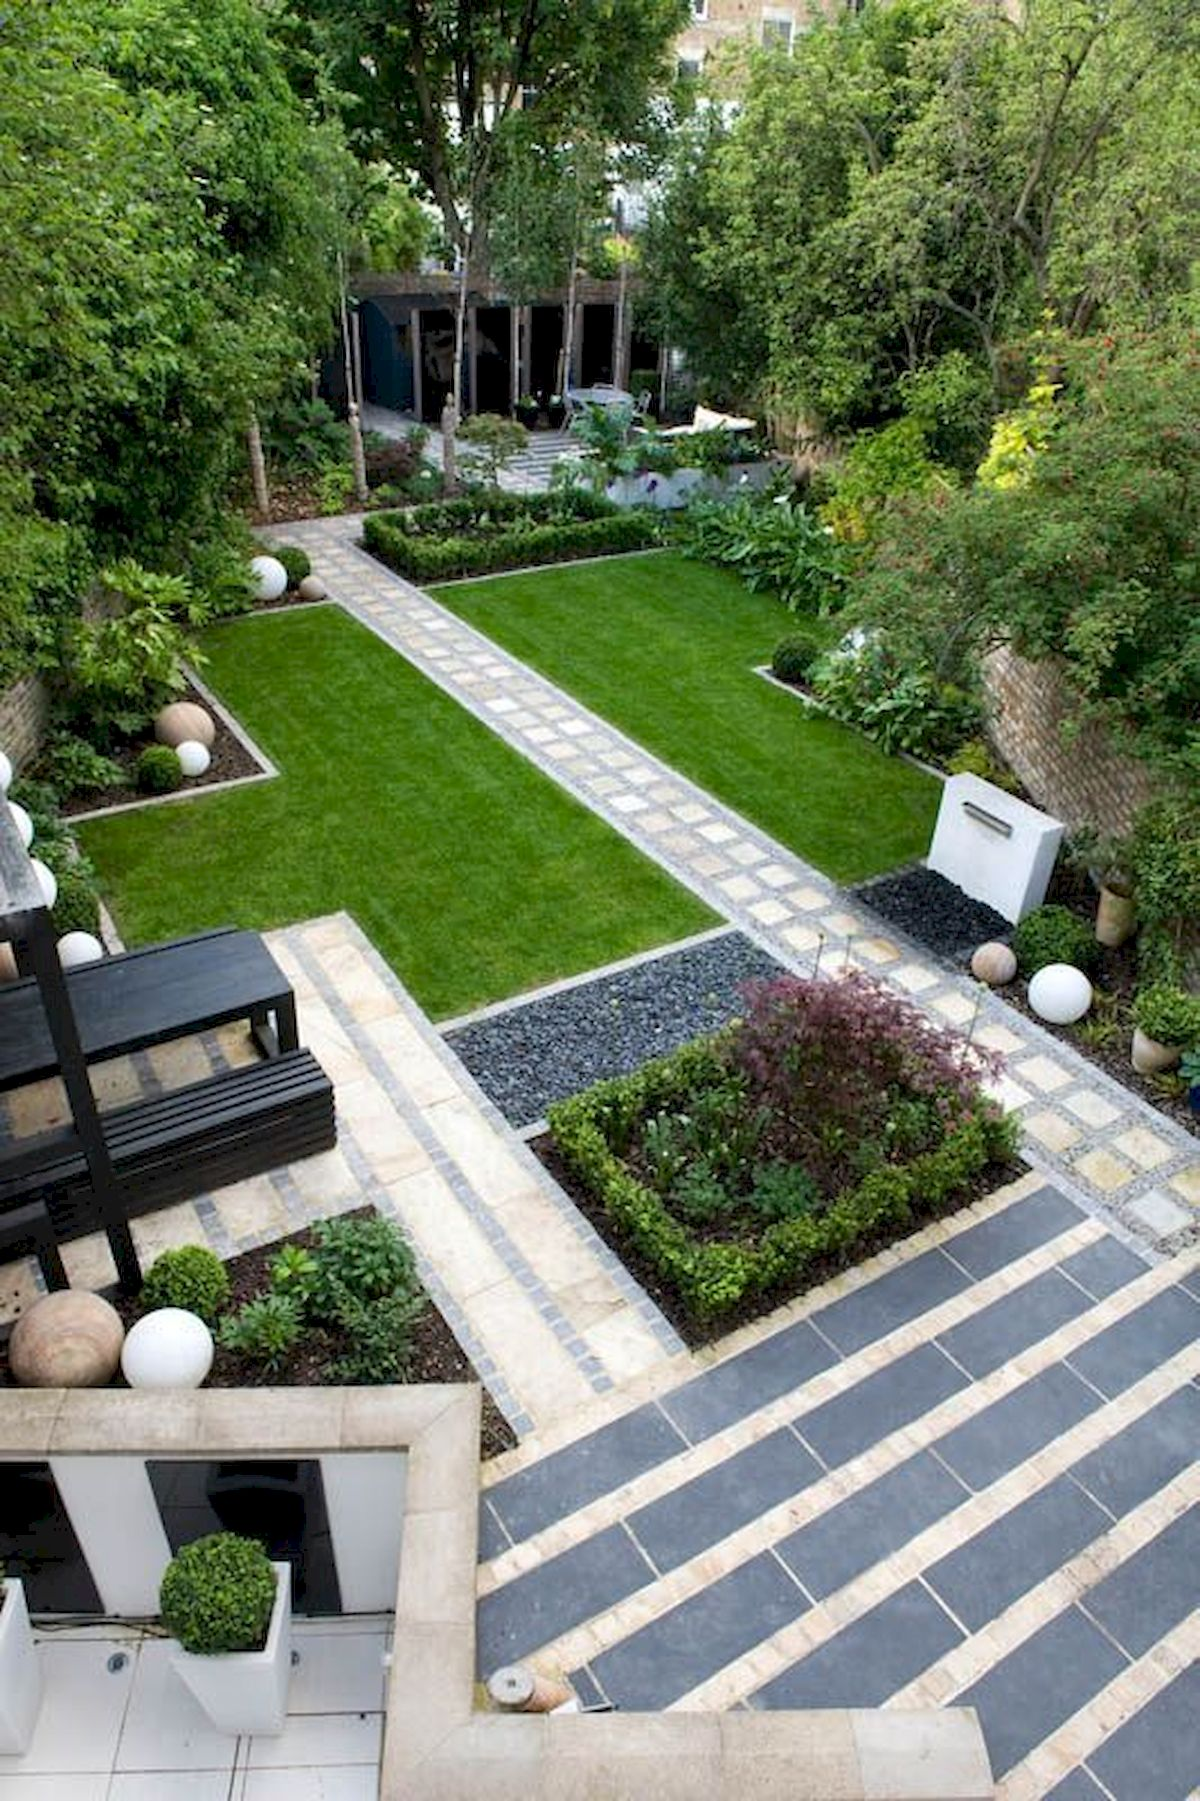 40 Fabulous Modern Garden Designs Ideas For Front Yard and ...